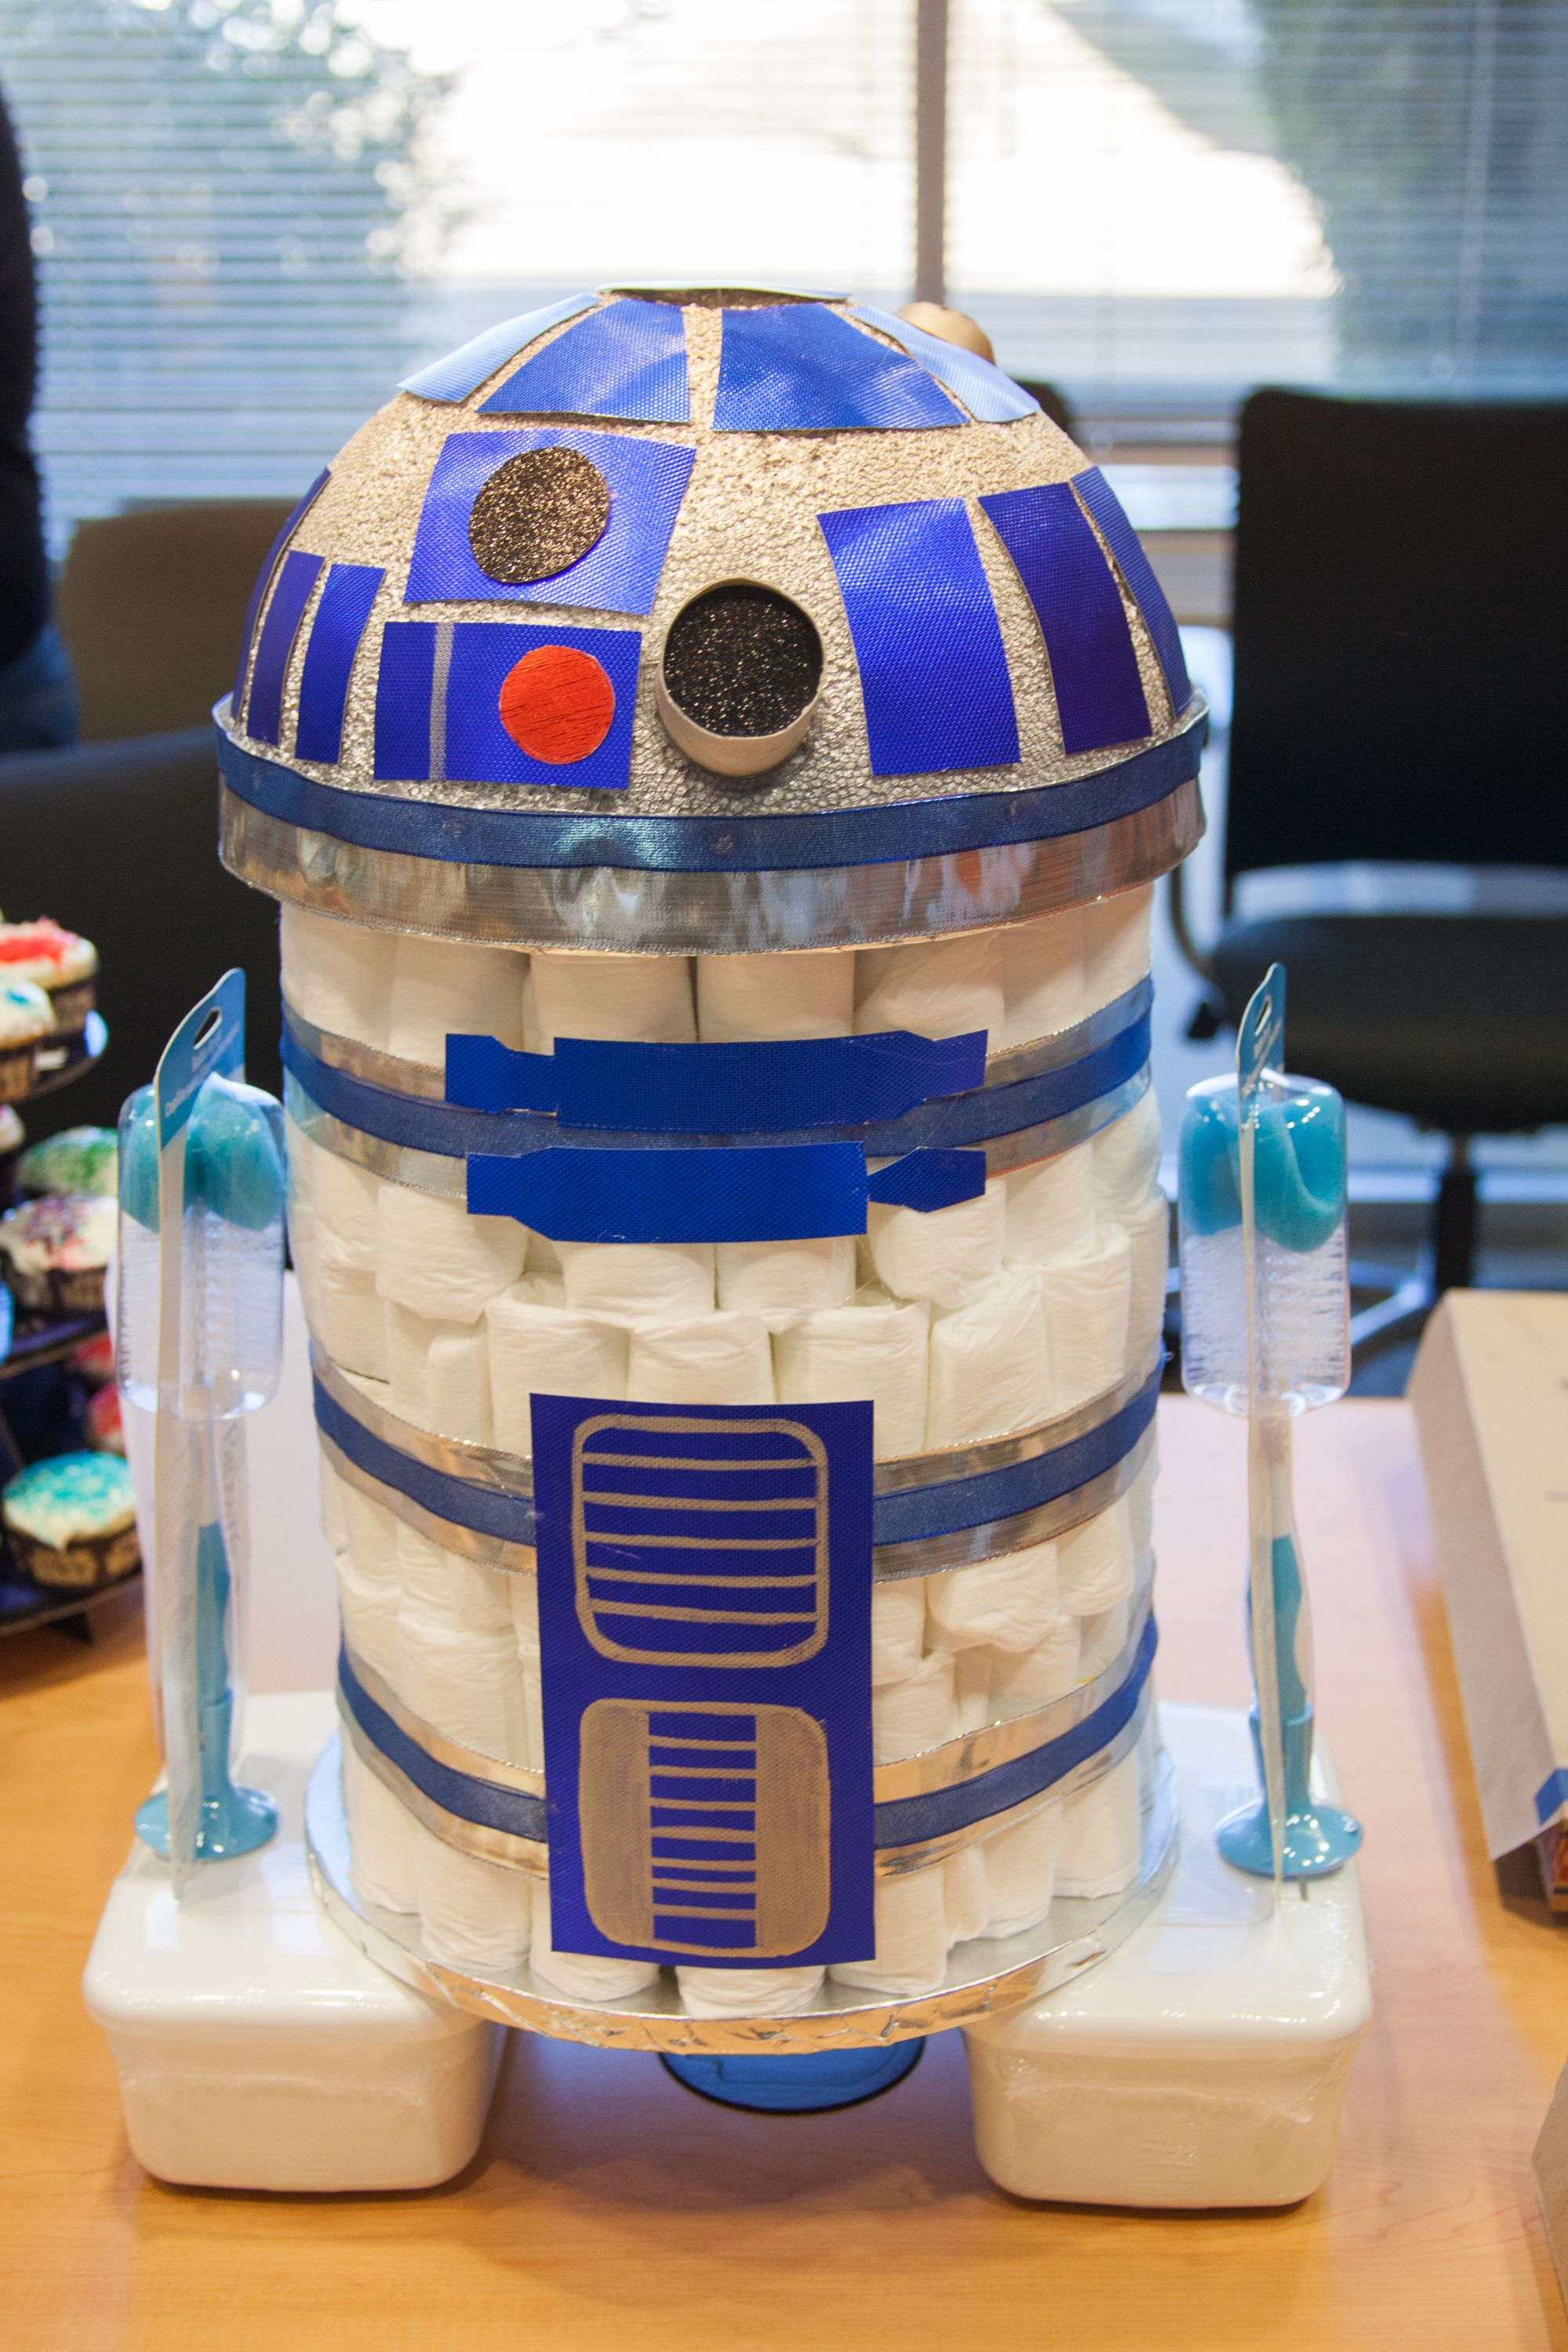 Star Themed Gifts R2d2 Diaper Cake For Star Wars Themed Baby Shower Nerd